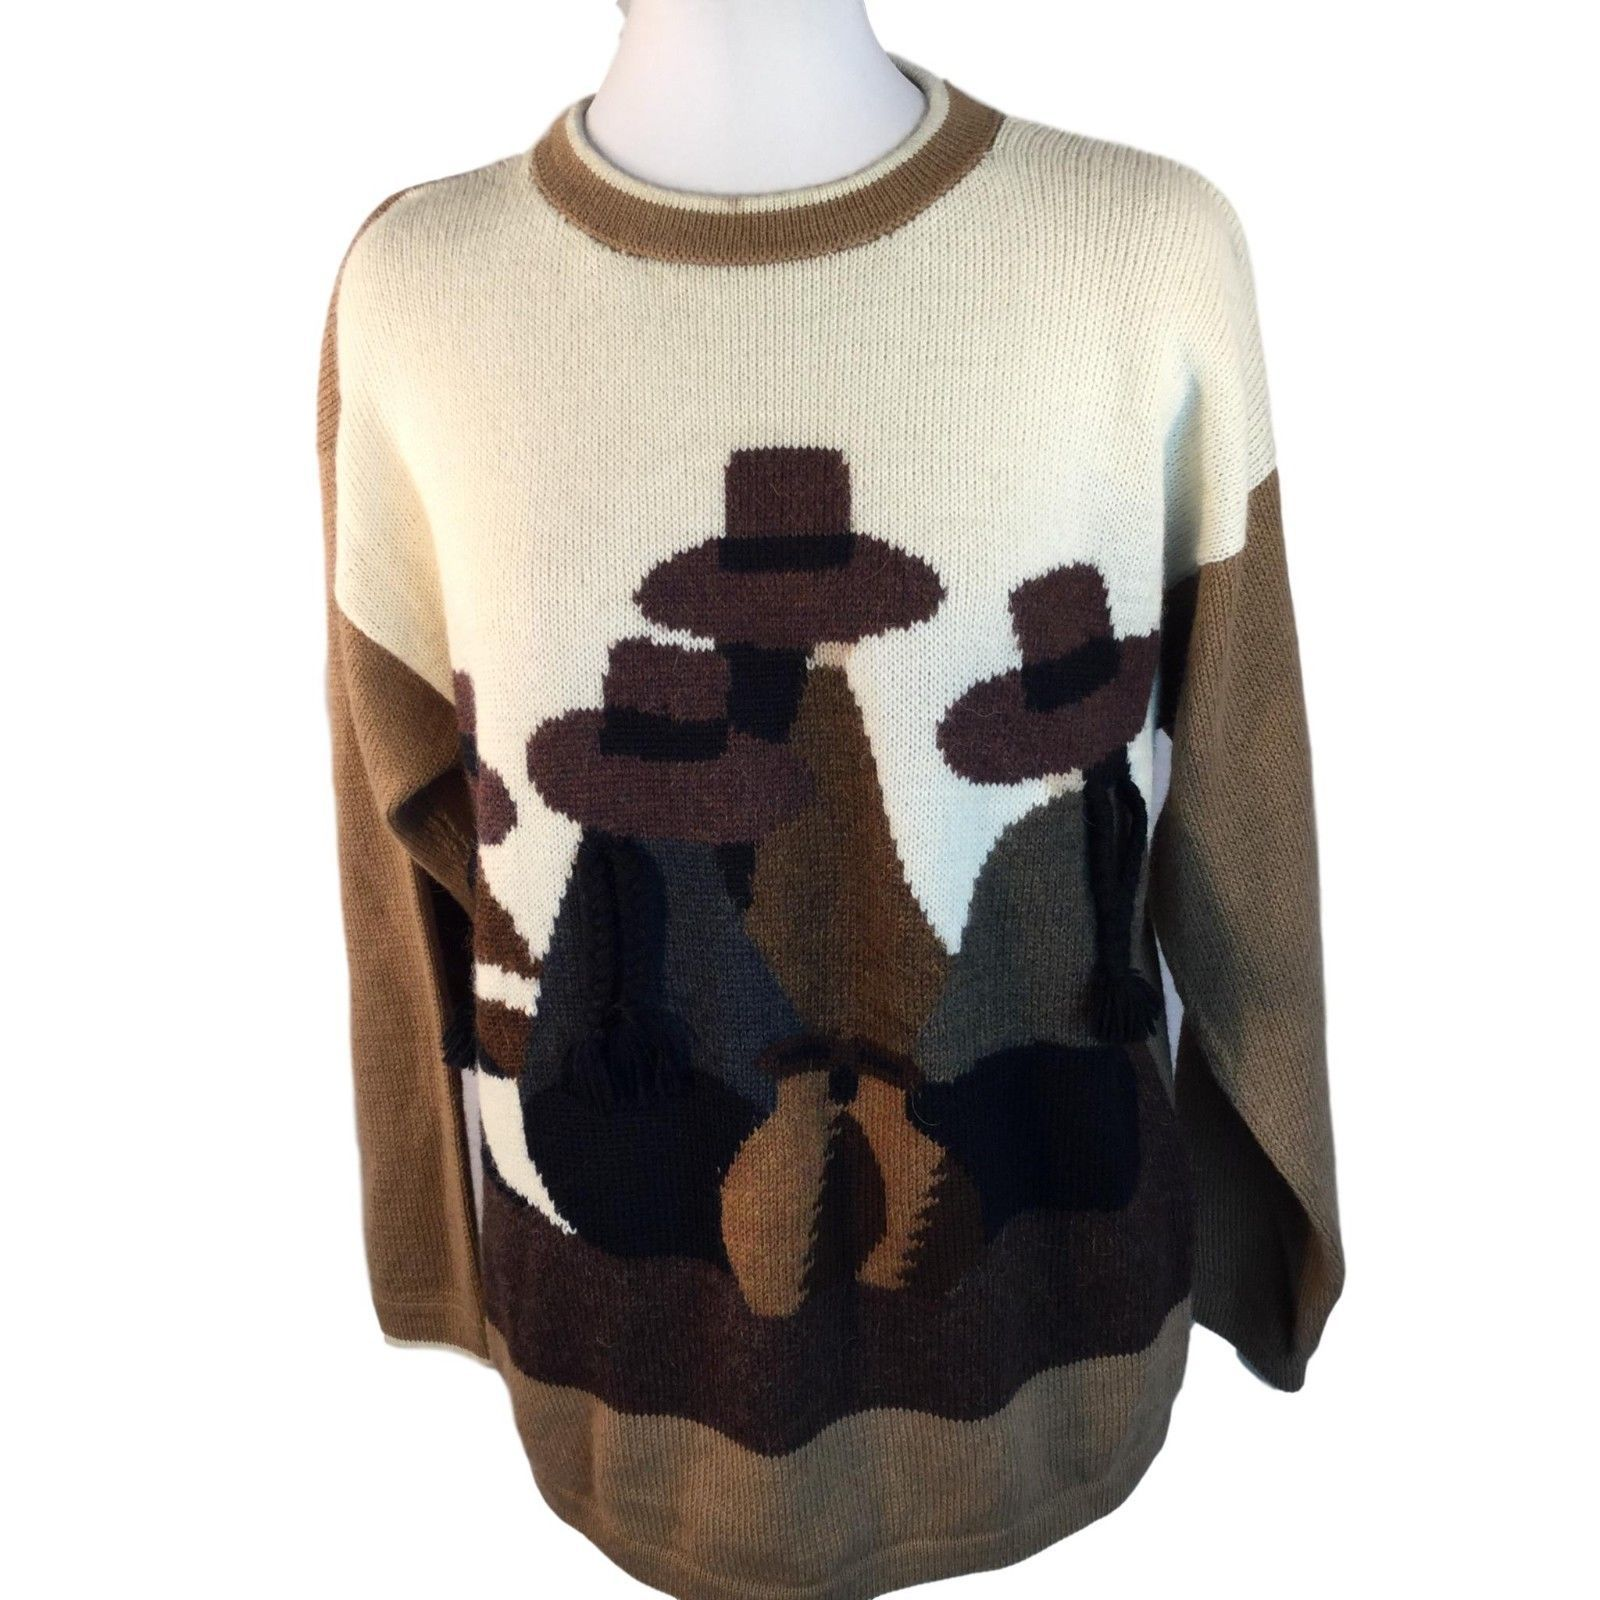 Primary image for Alpaca Sweater Natives with Braids Peru Crop Sweater